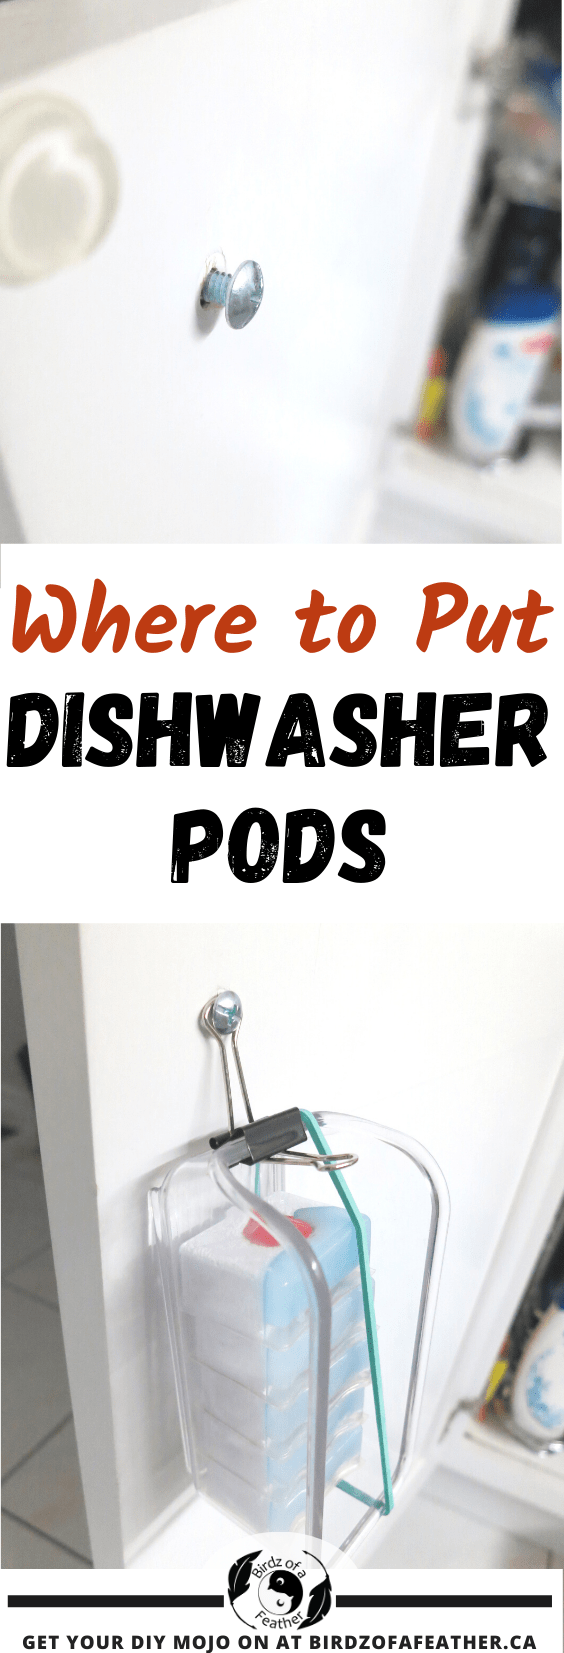 Where to put dishwasher pods can be a challenge. Today we have an easy dishwasher tab dispenser that solves my biggest pet peeves about packaging!  Birdz of a Feather | dishwasher pods | dishwasher pods storage | dishwasher pods diy | dishwasher tabs storage | dishwasher tabs organization | dishwasher pods organization | household hacks | dishwasher detergent storage | dishwasher detergent pod storage | dishwasher tab storage | dishwasher pod storage